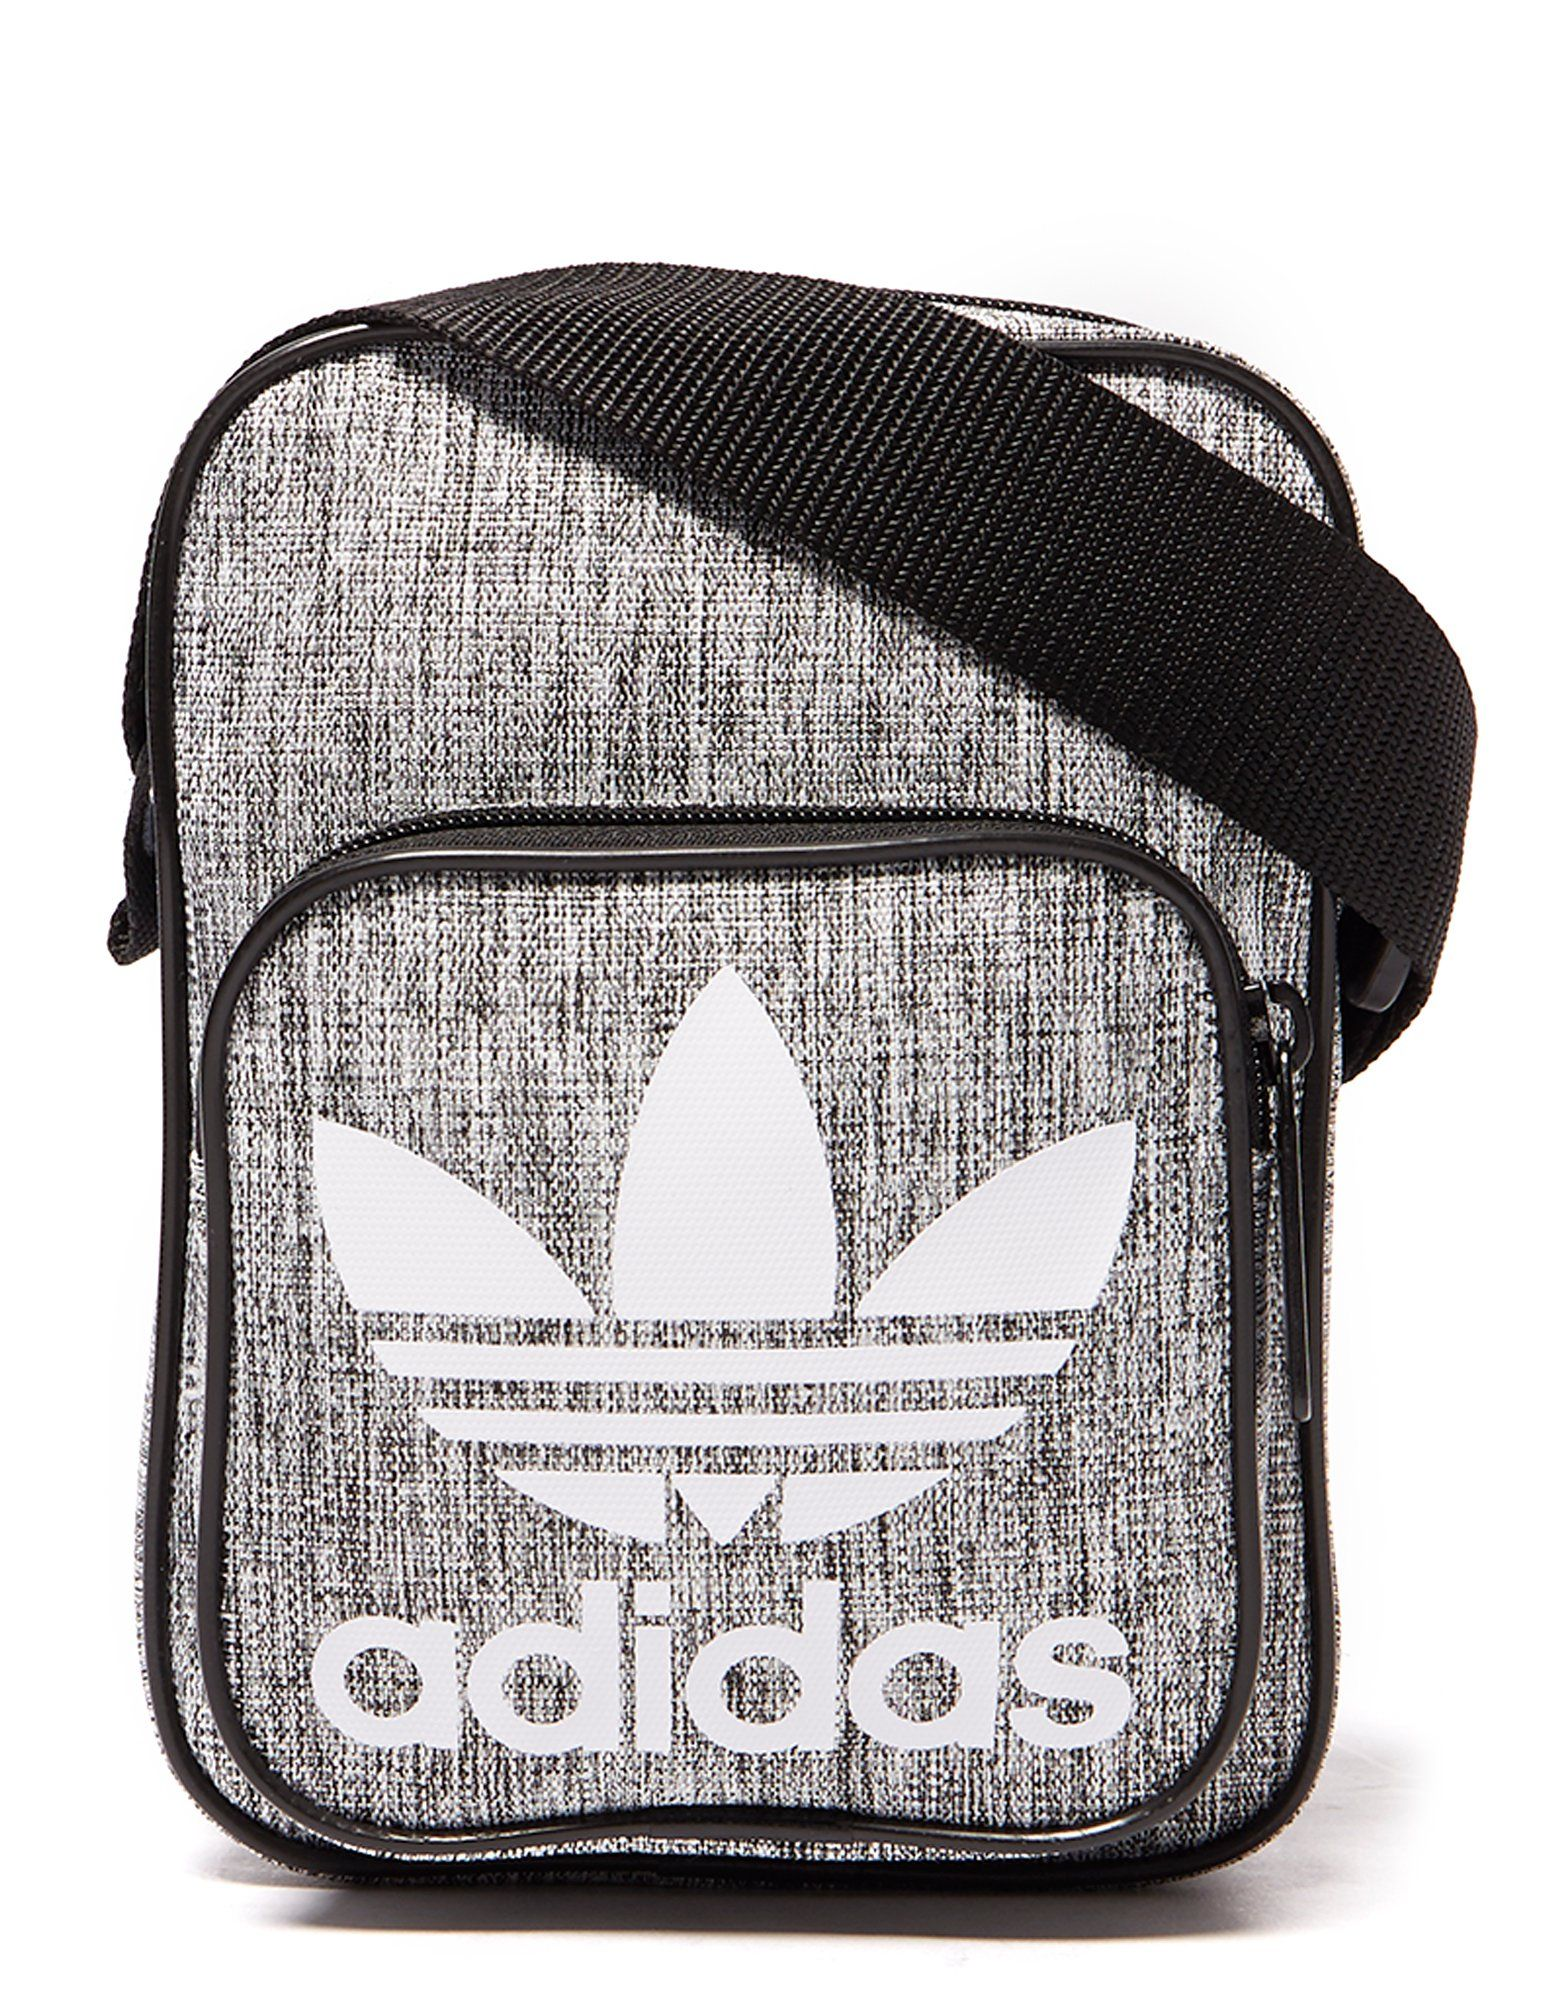 40cce768e504 Adidas Originals Bags   Gymsacks - Small Items Bags